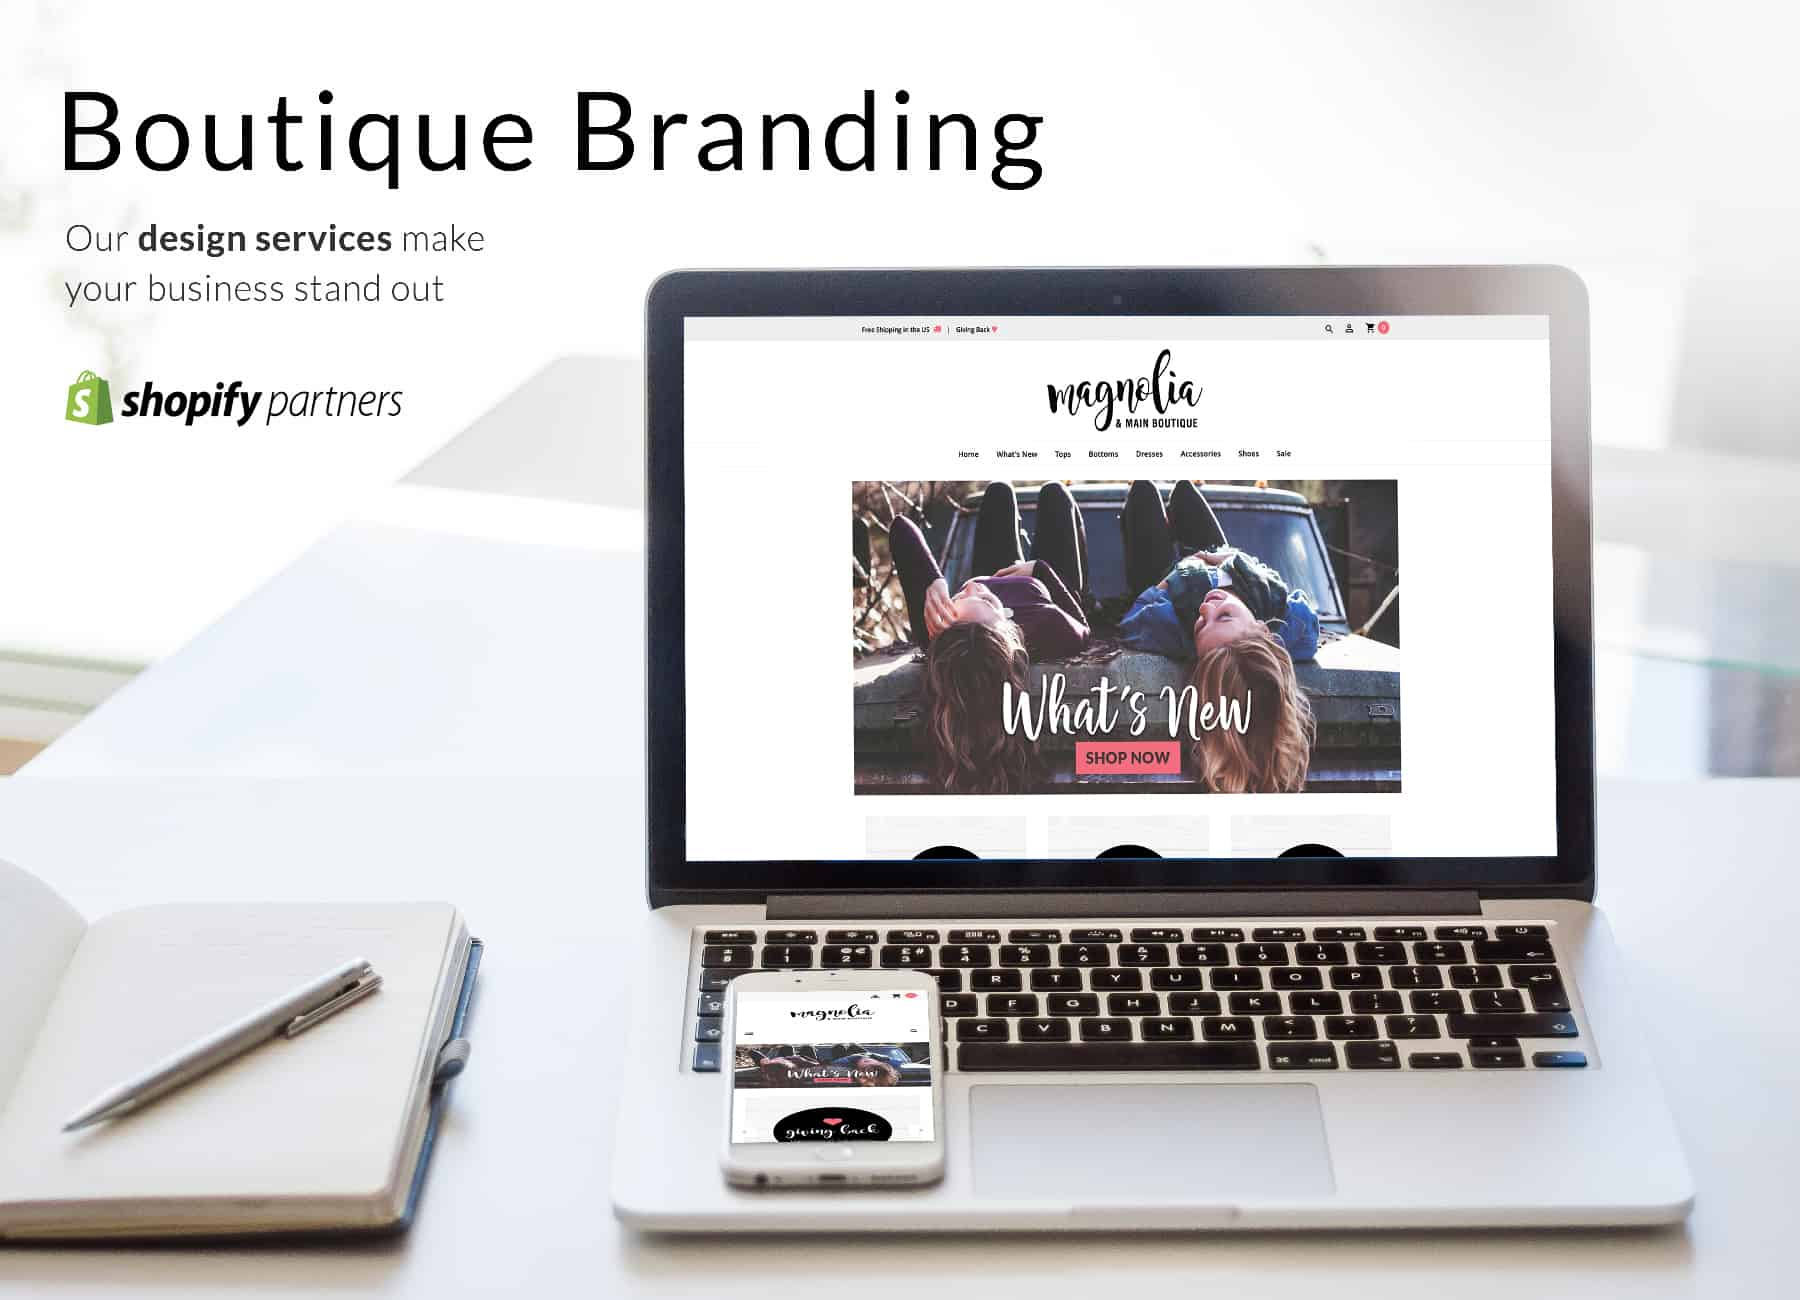 Boutique web design and branding services